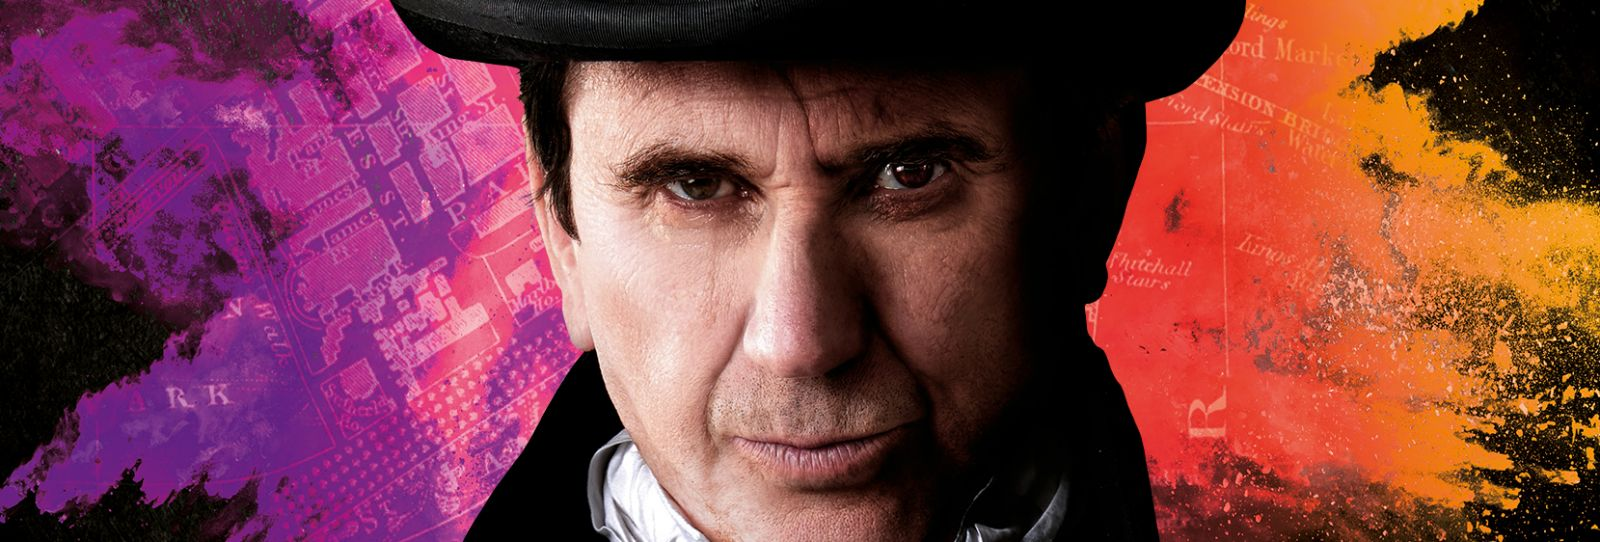 Dr Jekyll & Mr Hyde Cast Announced